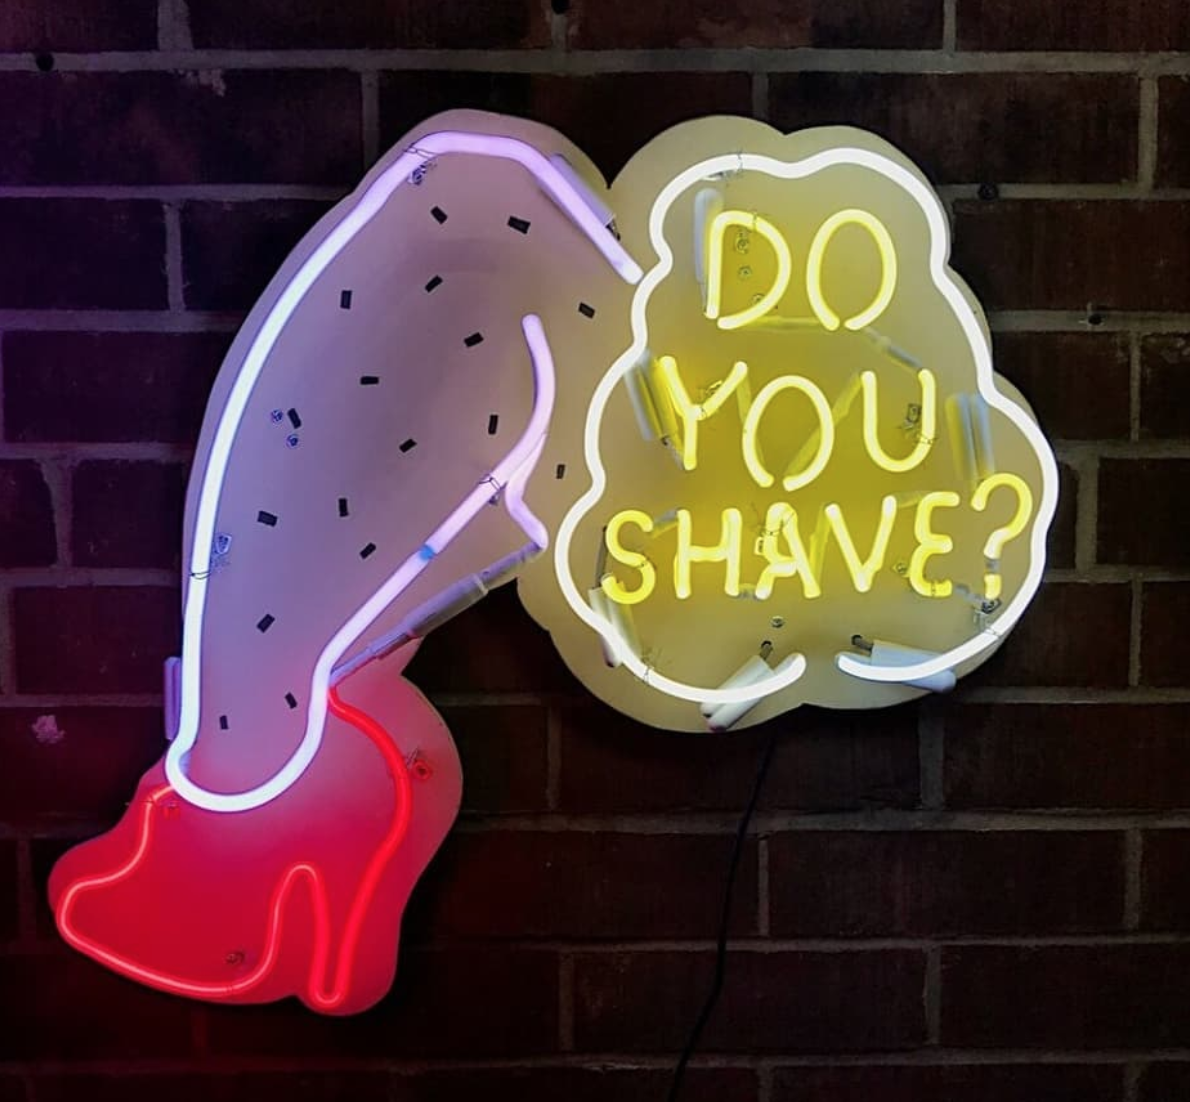 Do you shave__2018 2.5x3ft.png